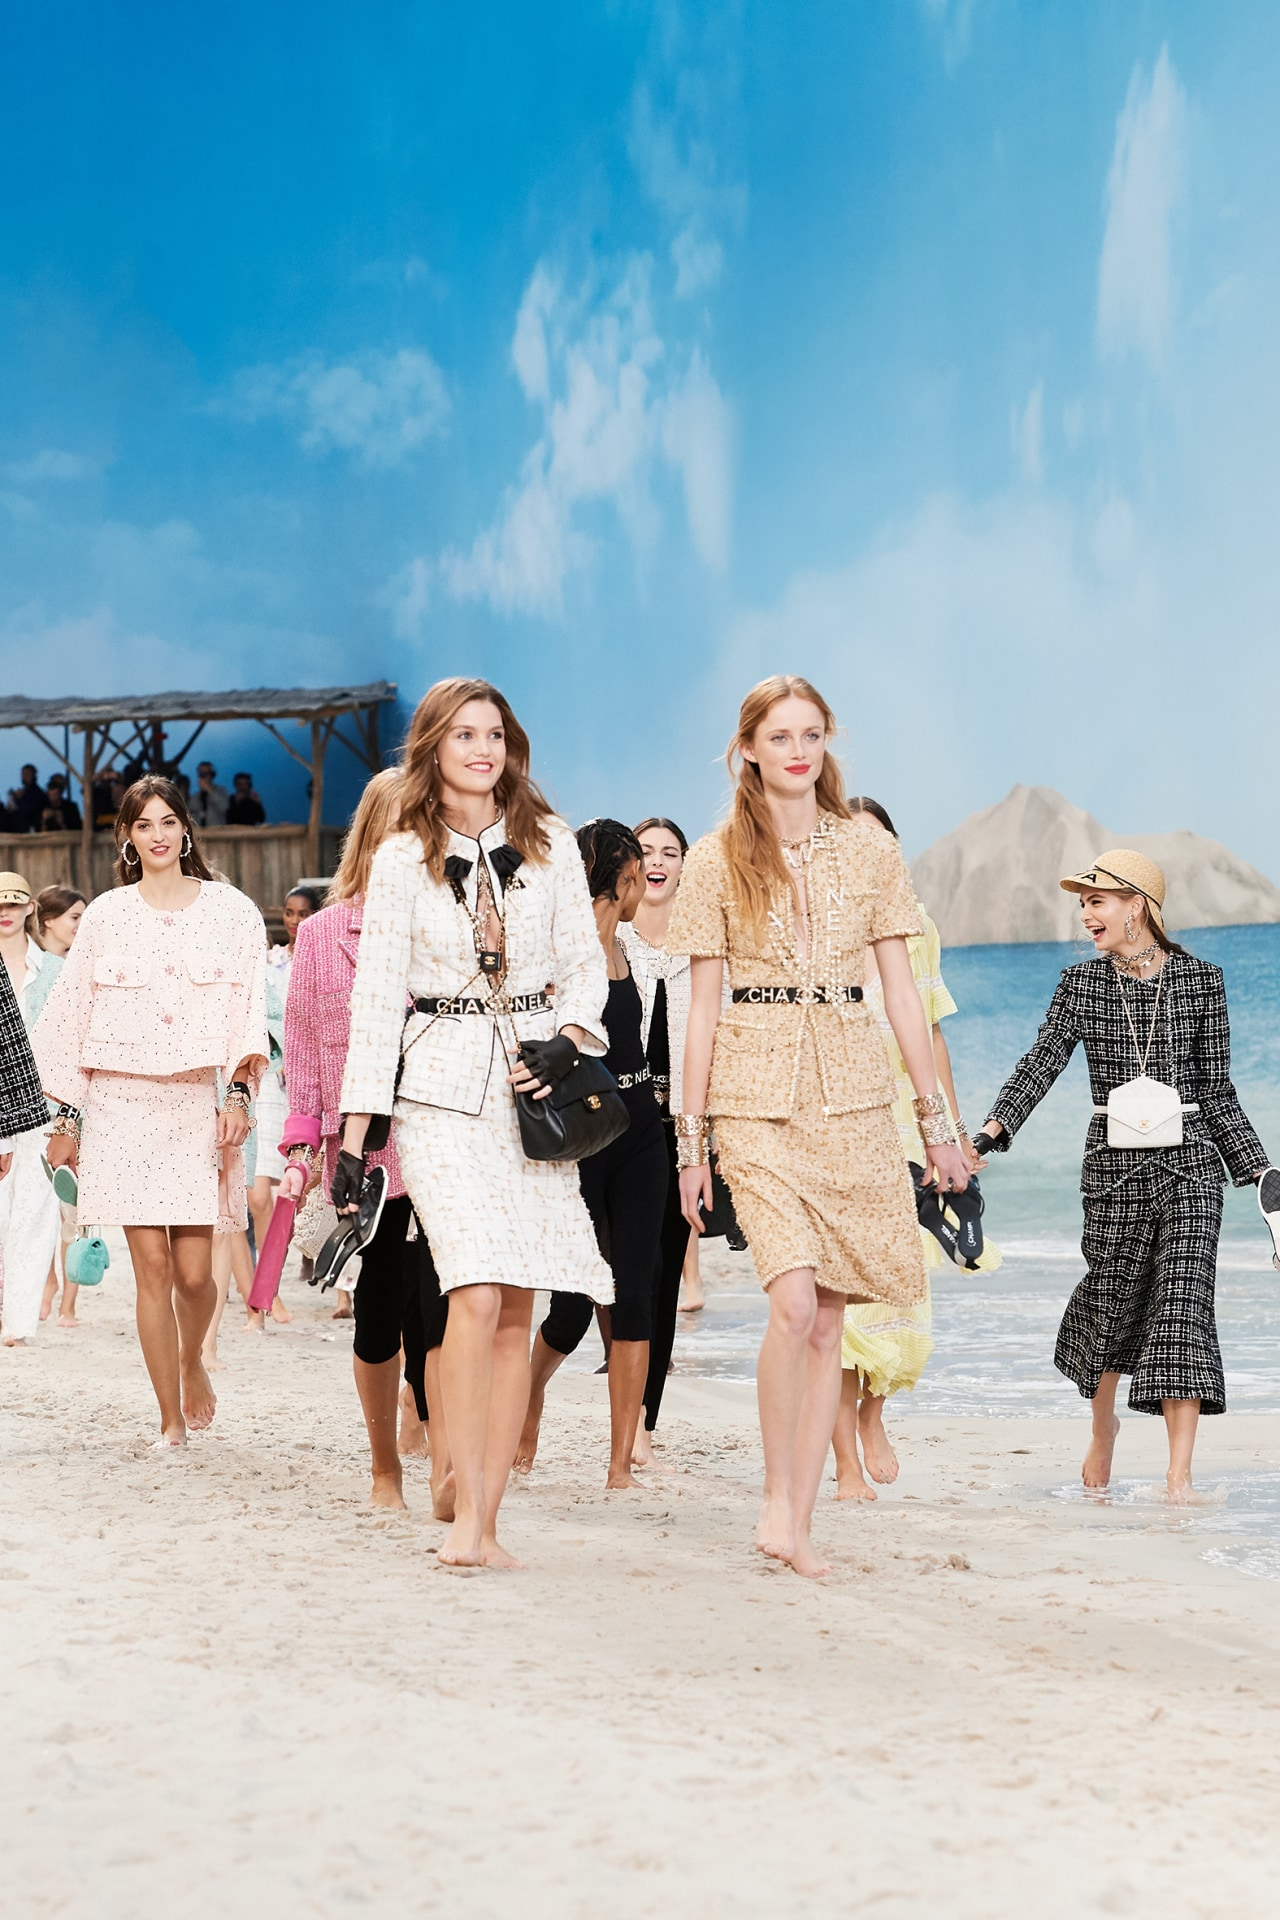 A Vogue fashion editor remembers what it was like to attend Karl Lagerfeld's Chanel shows